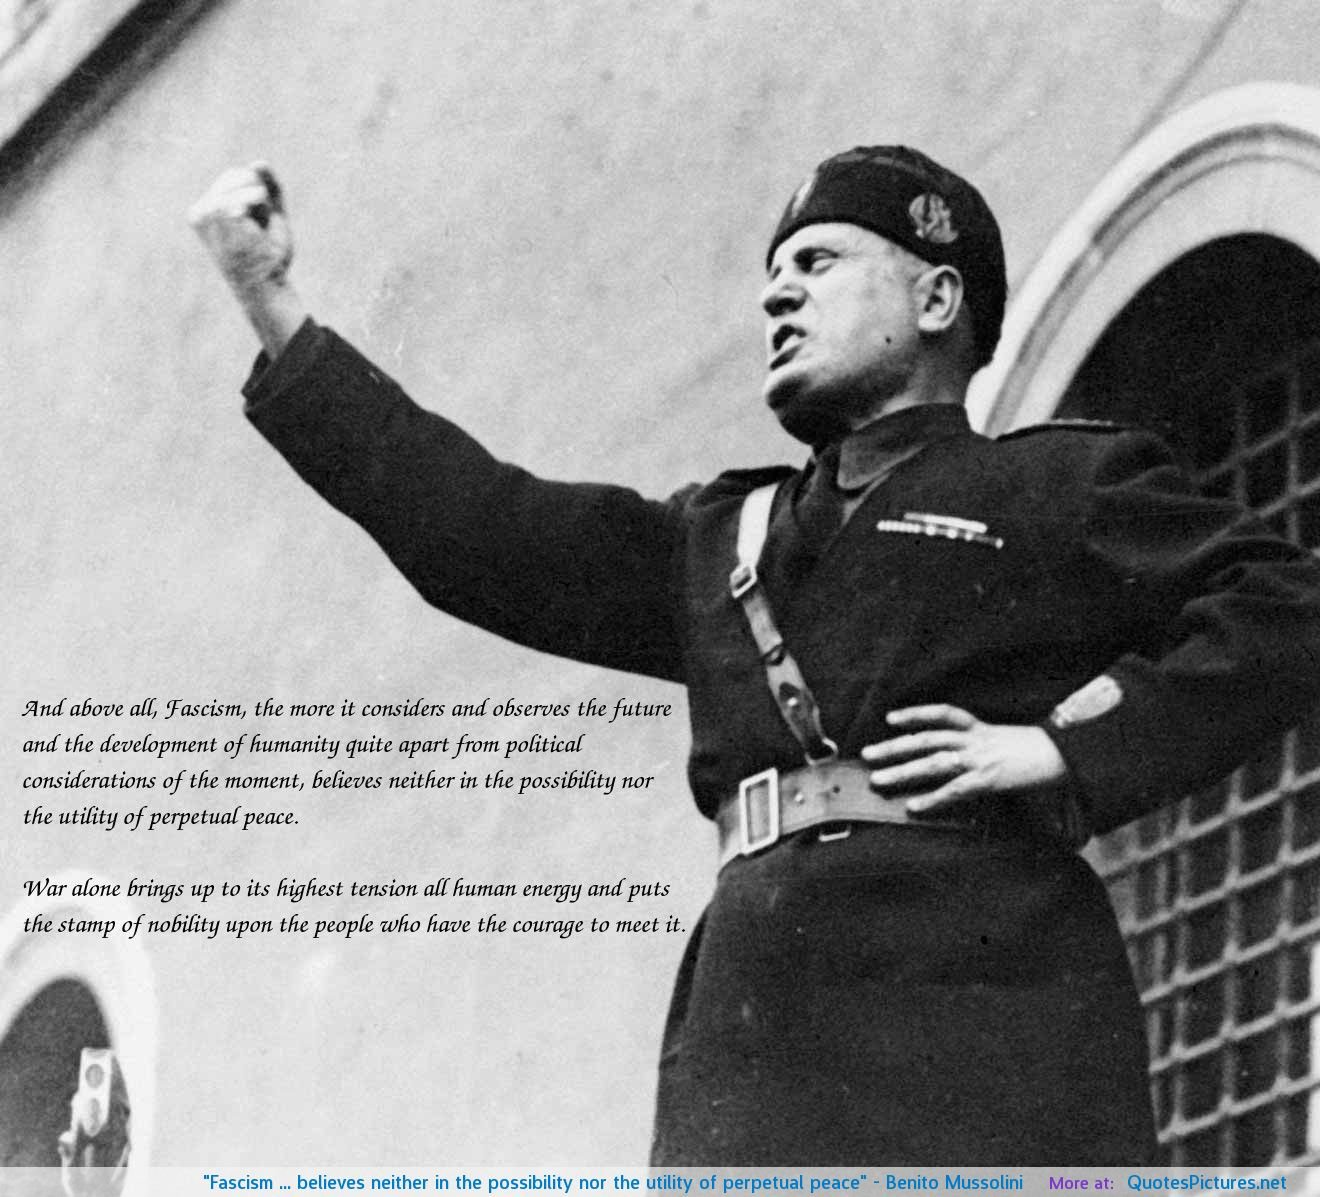 benito mussolini and fascism essay Read this full essay on benito mussolini and the rise of fascism benito mussolini  and the rise of fascismbenito mussolini was italy's firs fascist dictator.